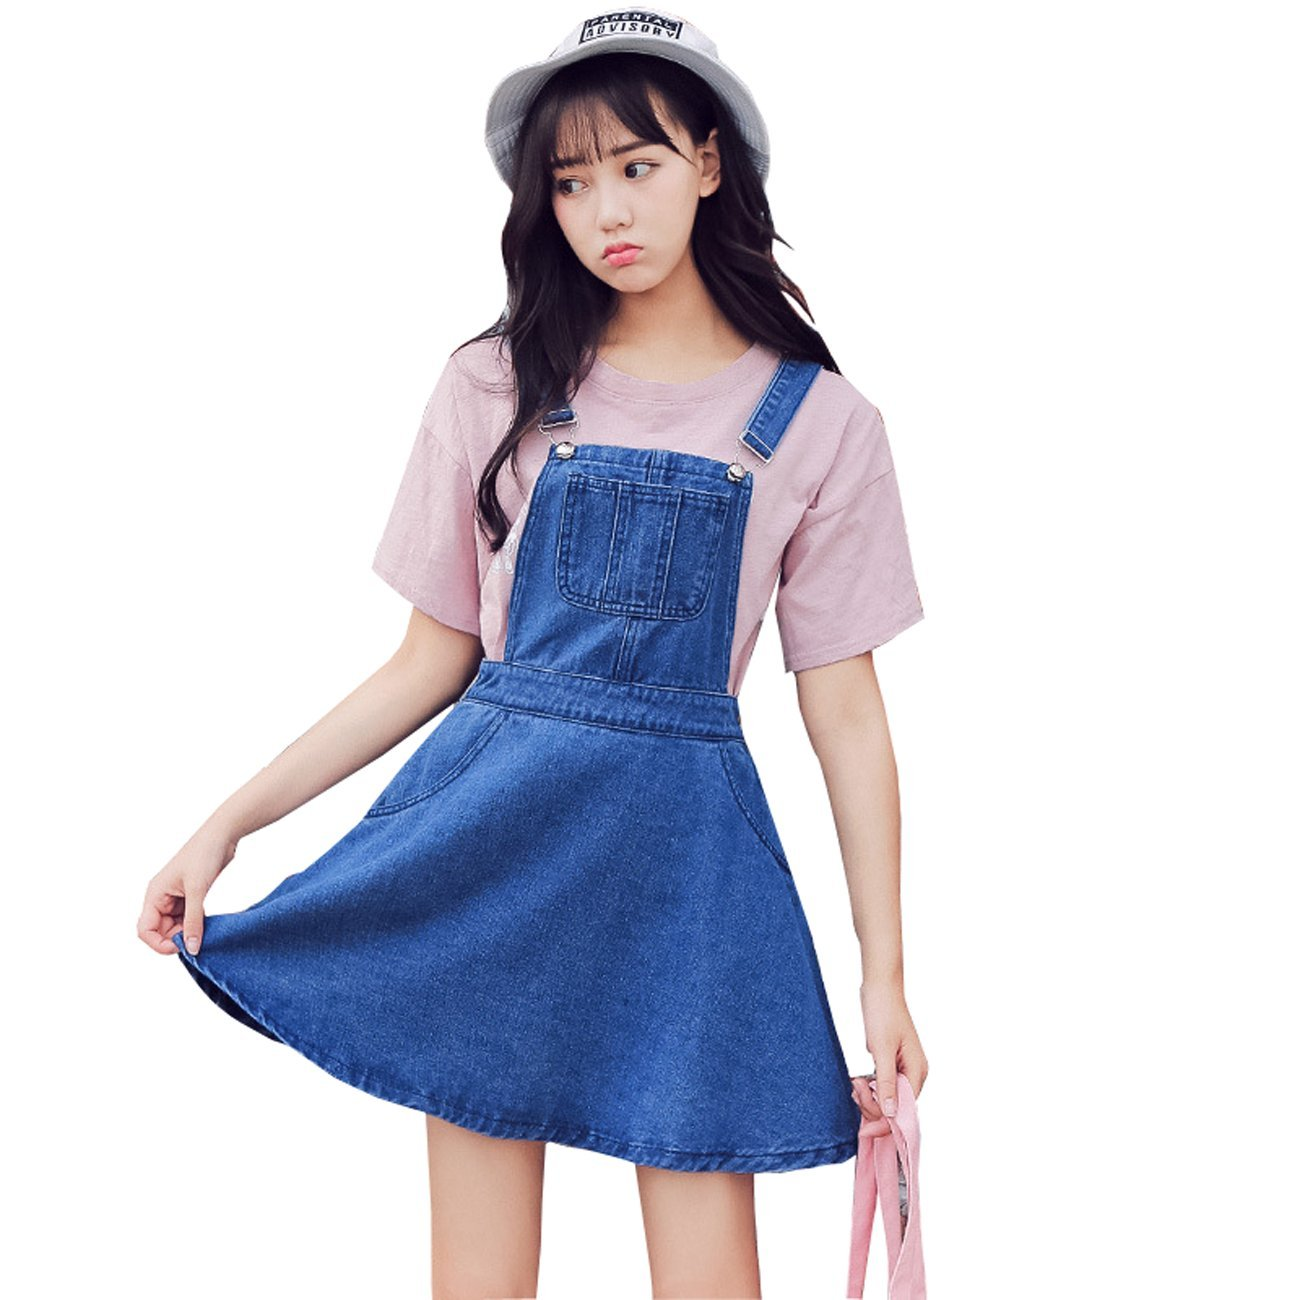 TOPJIN Women s A Line One Piece Denim Suspender Overall Dresses Jeans  Jumper Dress at Amazon Women s Clothing store  3ab7f5f09